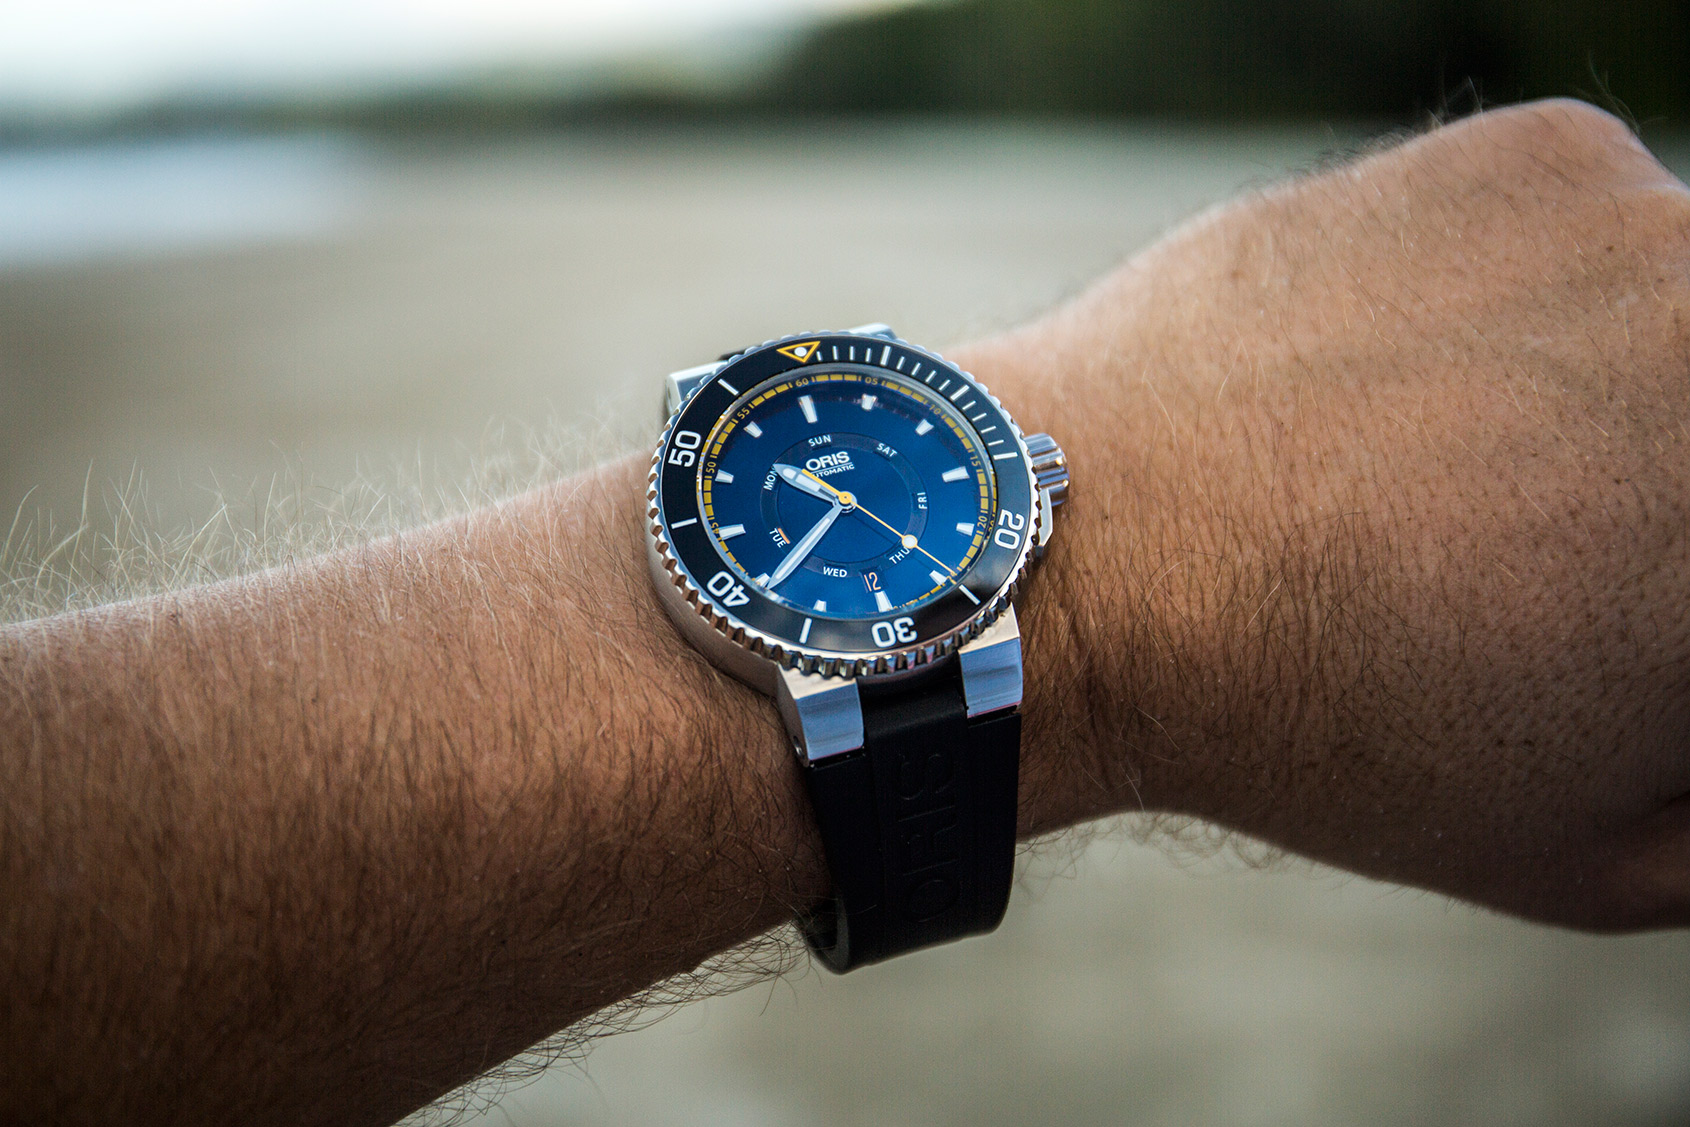 Oris Great Barrier Reef Ii Limited Edition How Bad Is The